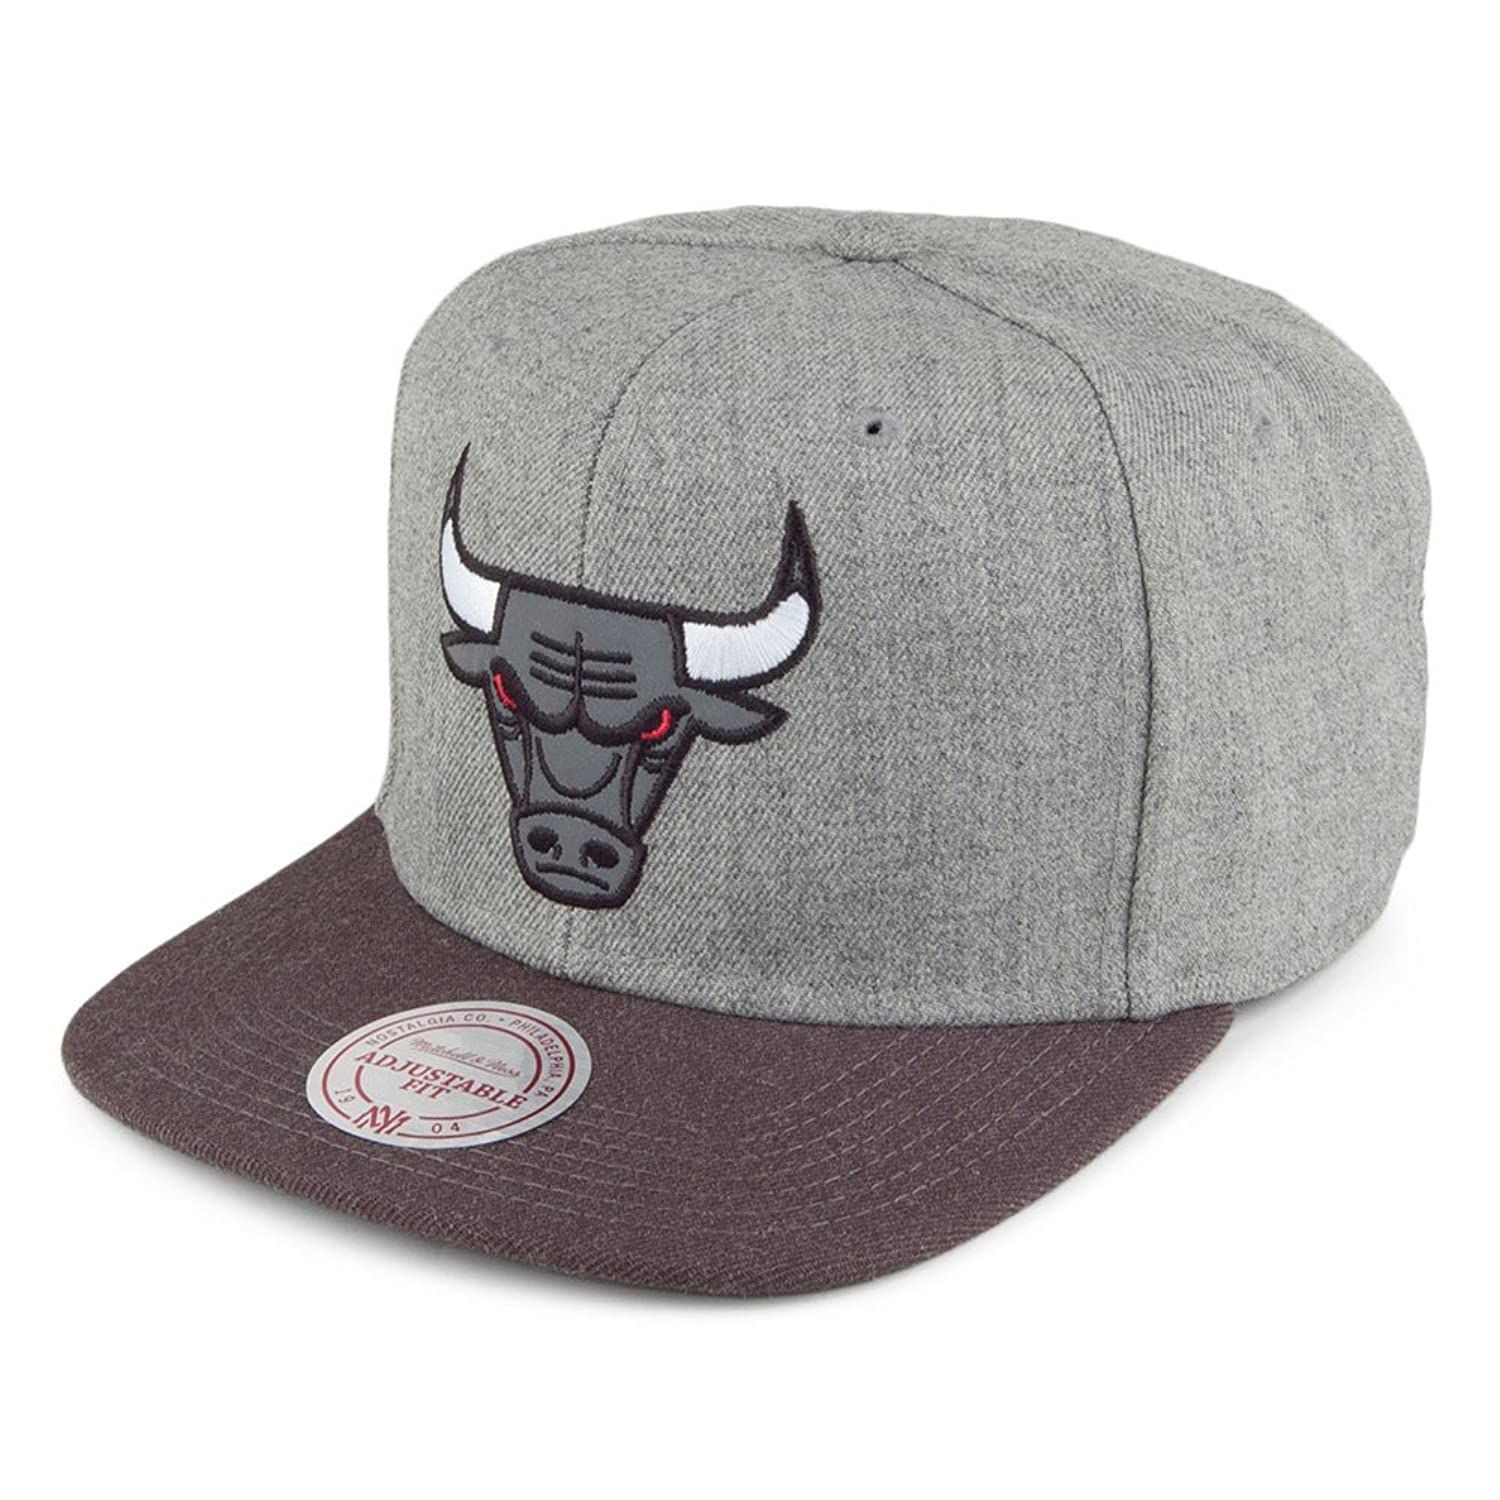 Mejor Gorra Heather Reflective Chicago Bulls Mitchell   Ness-Gris-Antracita b8d84df27e9